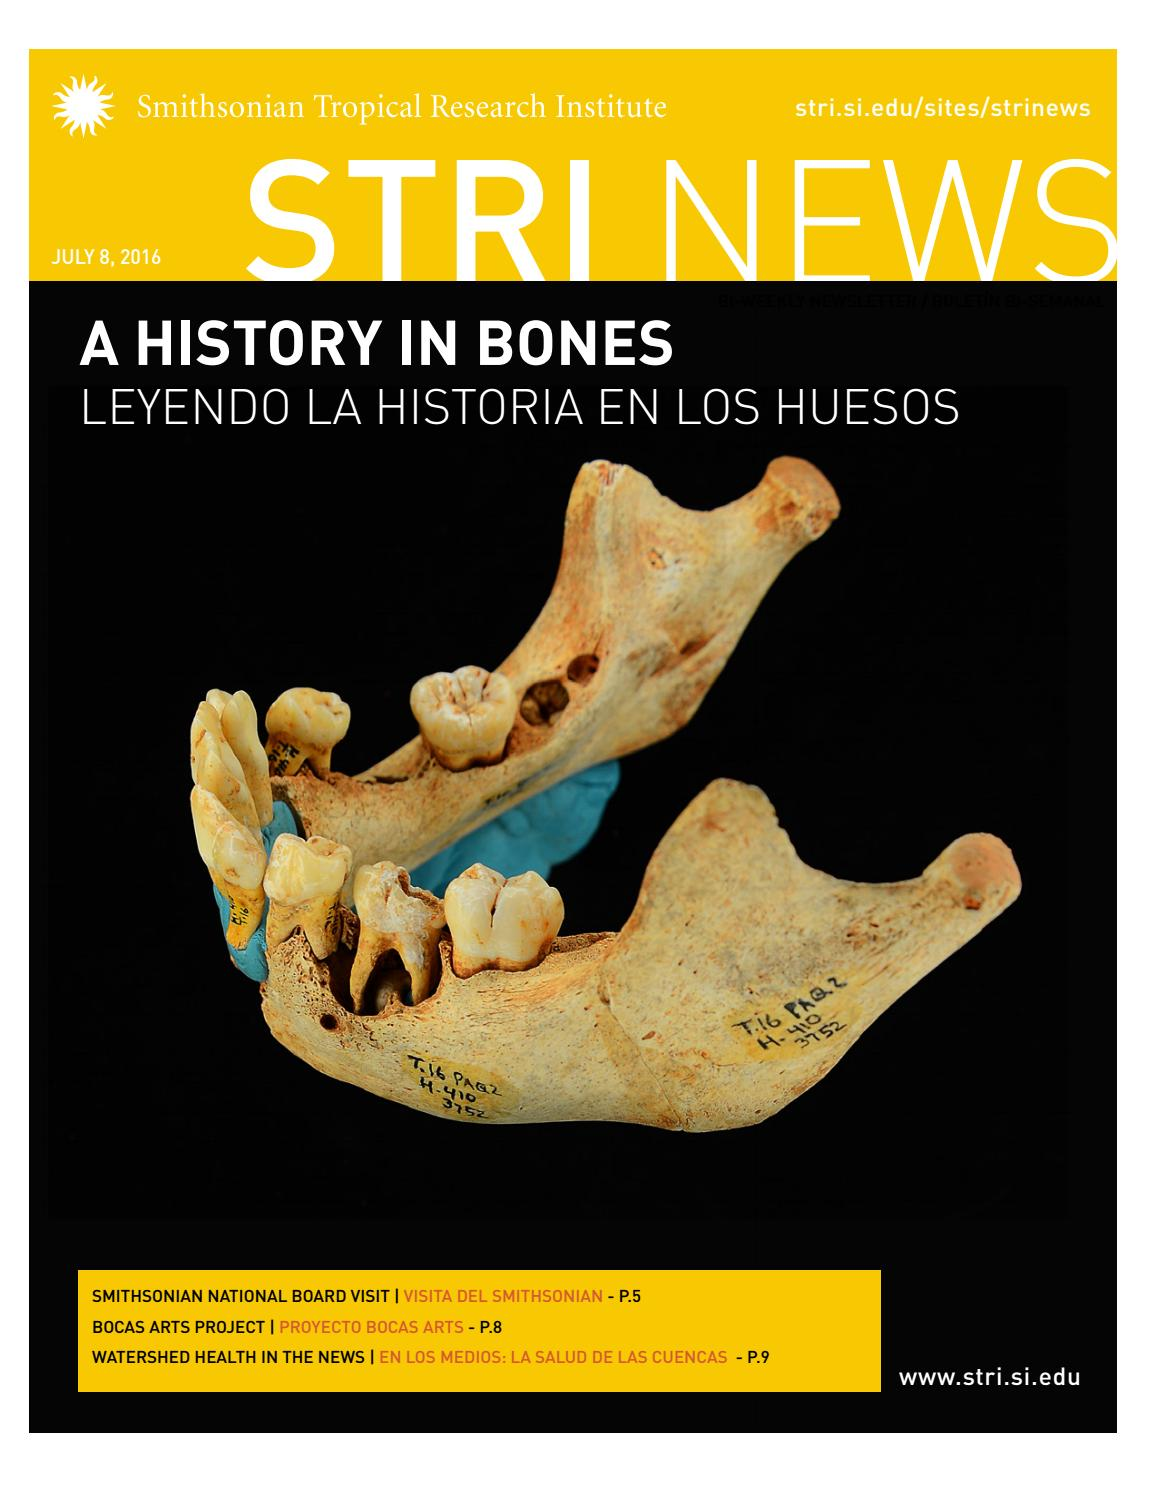 STRI NEWS JULY 8 by Smithsonian Tropical Research Institute - issuu